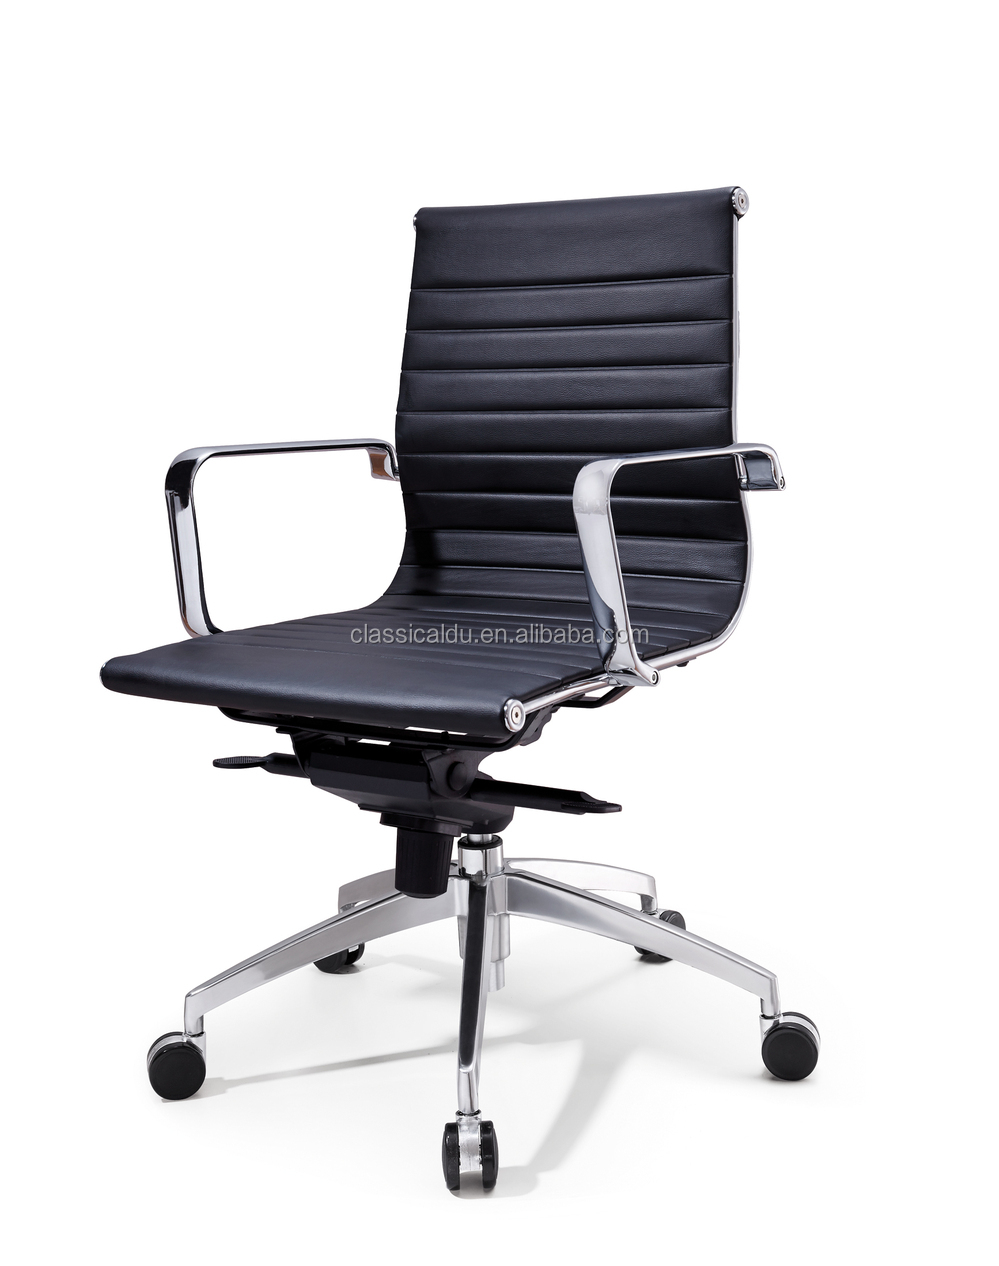 Cheap ribbed chair conference chair leather office chair for Cheap leather chairs